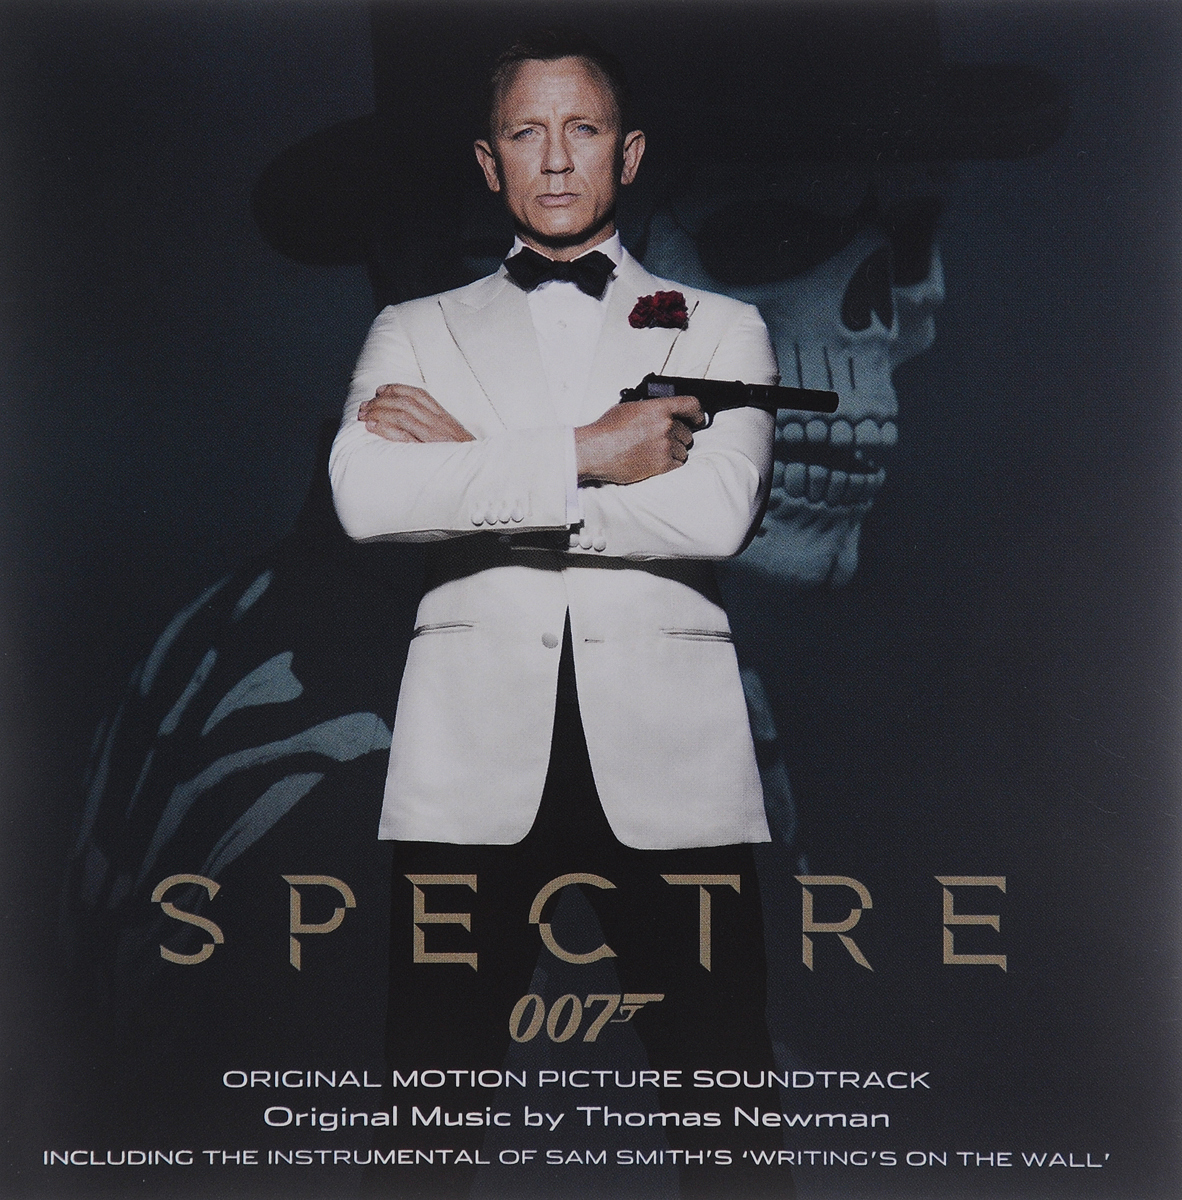 Spectre. Original Motion Picture Soundtrack. Original Music By Thomas Newman whiplash original motion picture soundtrack